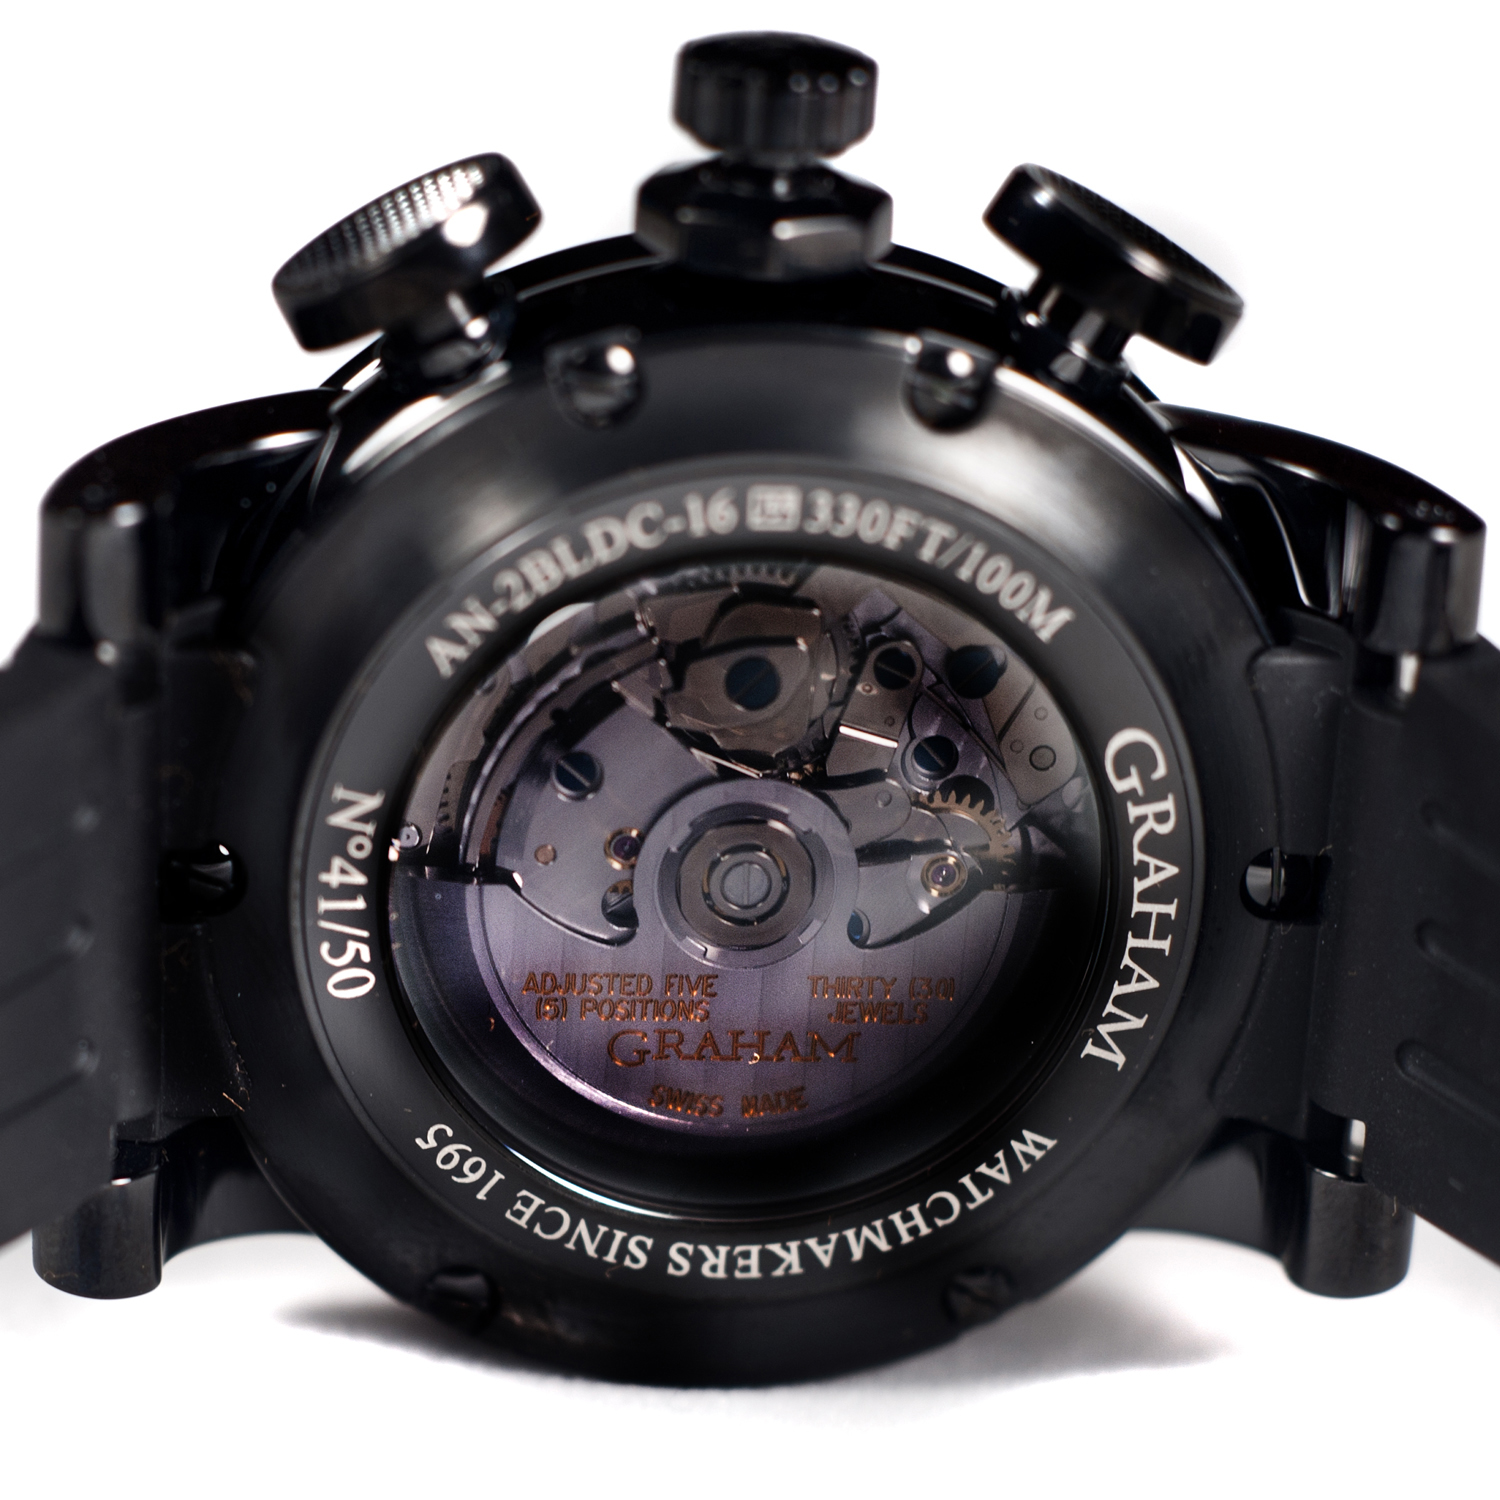 AN-2BLDC-16 Graham Silverstone Stowe 30 Jewels Automatic Racing Chrono BLK/GRN Only 50 PCS Made